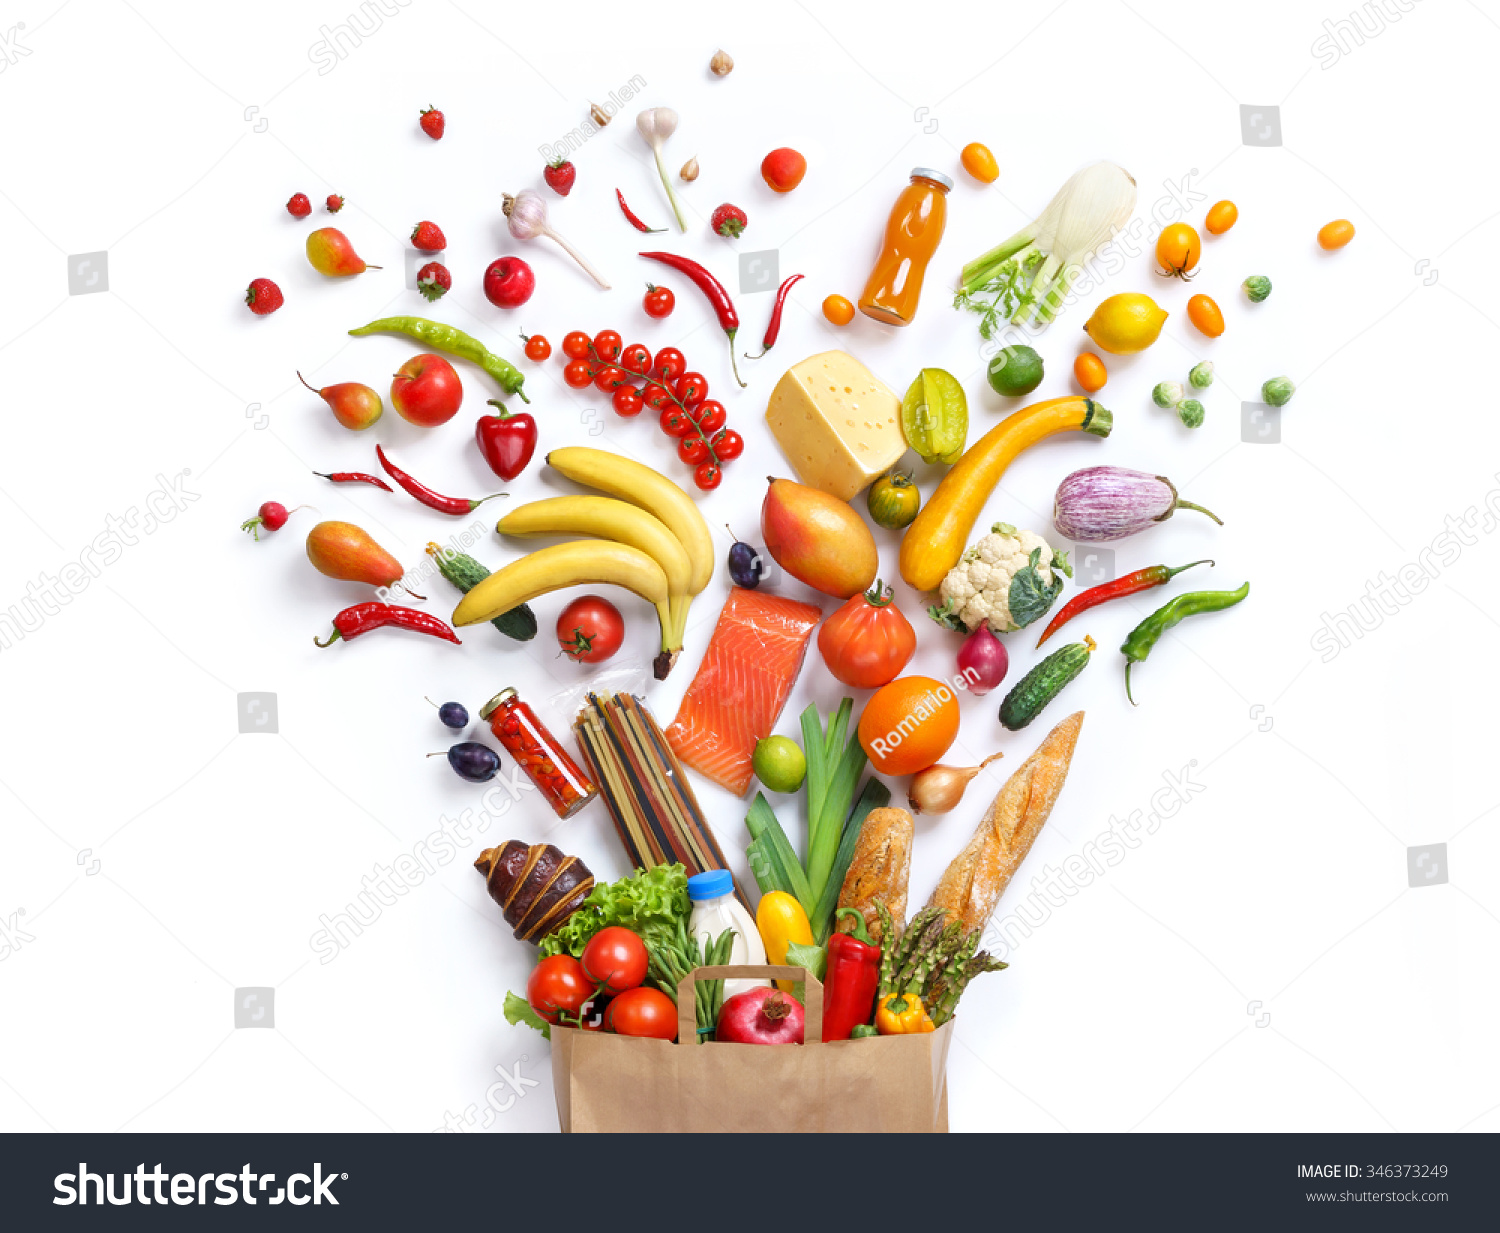 Healthy Eating Background Studio Photography Different Stock Photo Edit Now 346373249